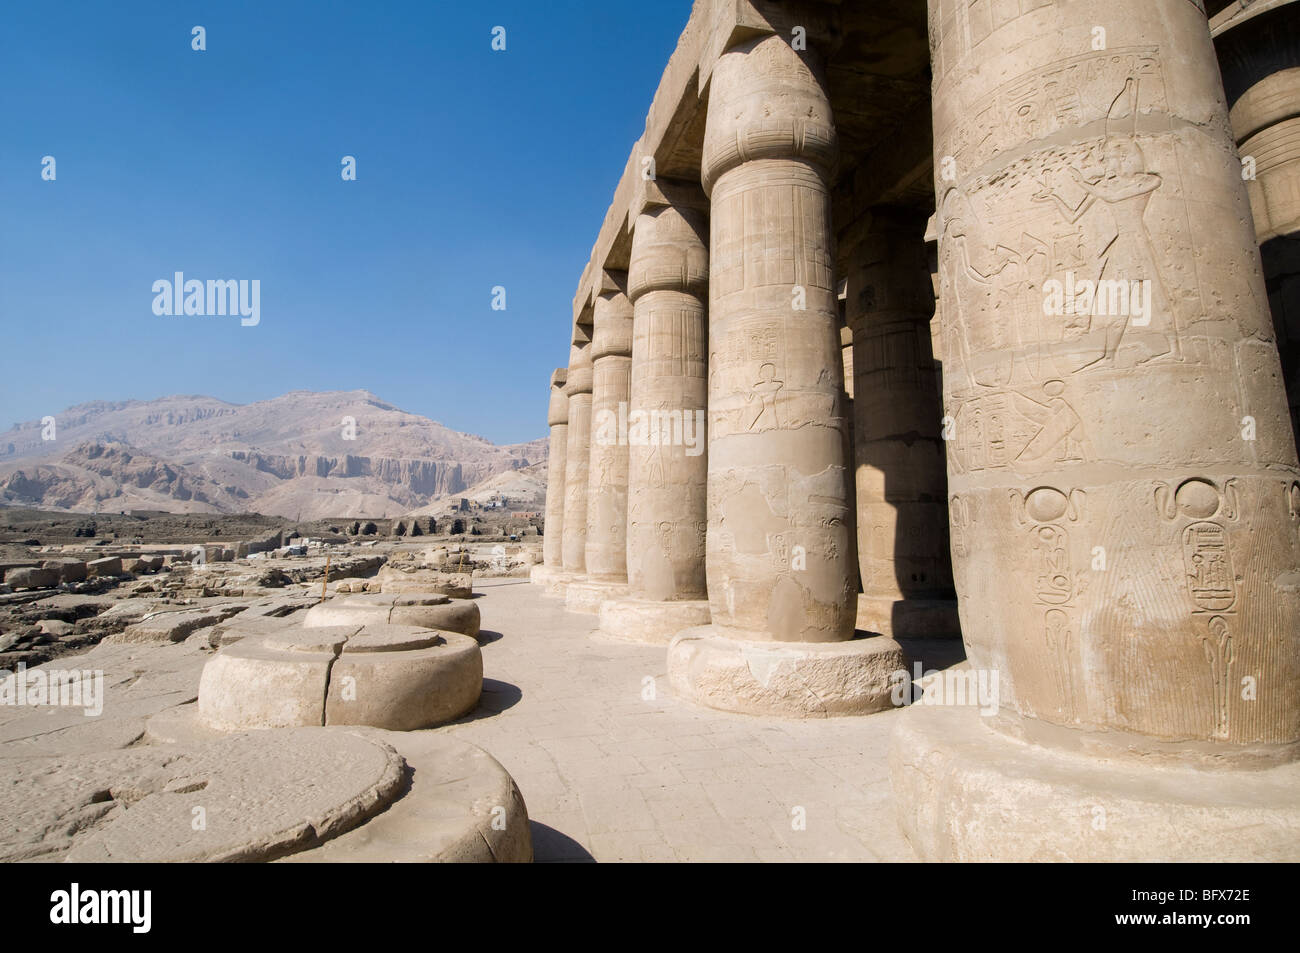 The Ramesseum near Valley of the Kings Luxor Egypt - Stock Image